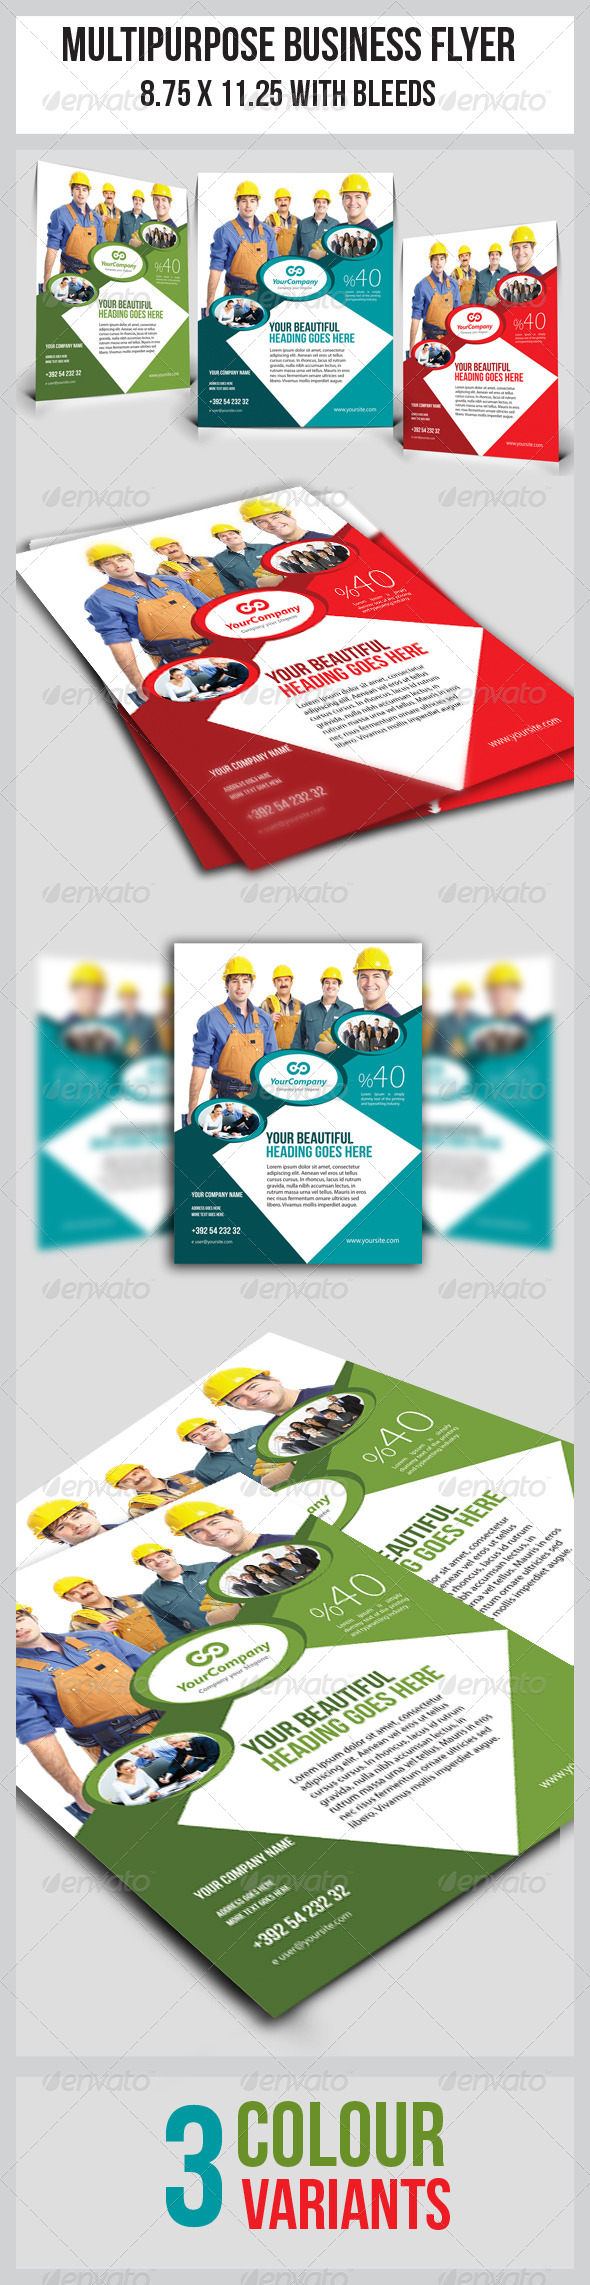 GraphicRiver Multipurpose Business Flyer 4772484